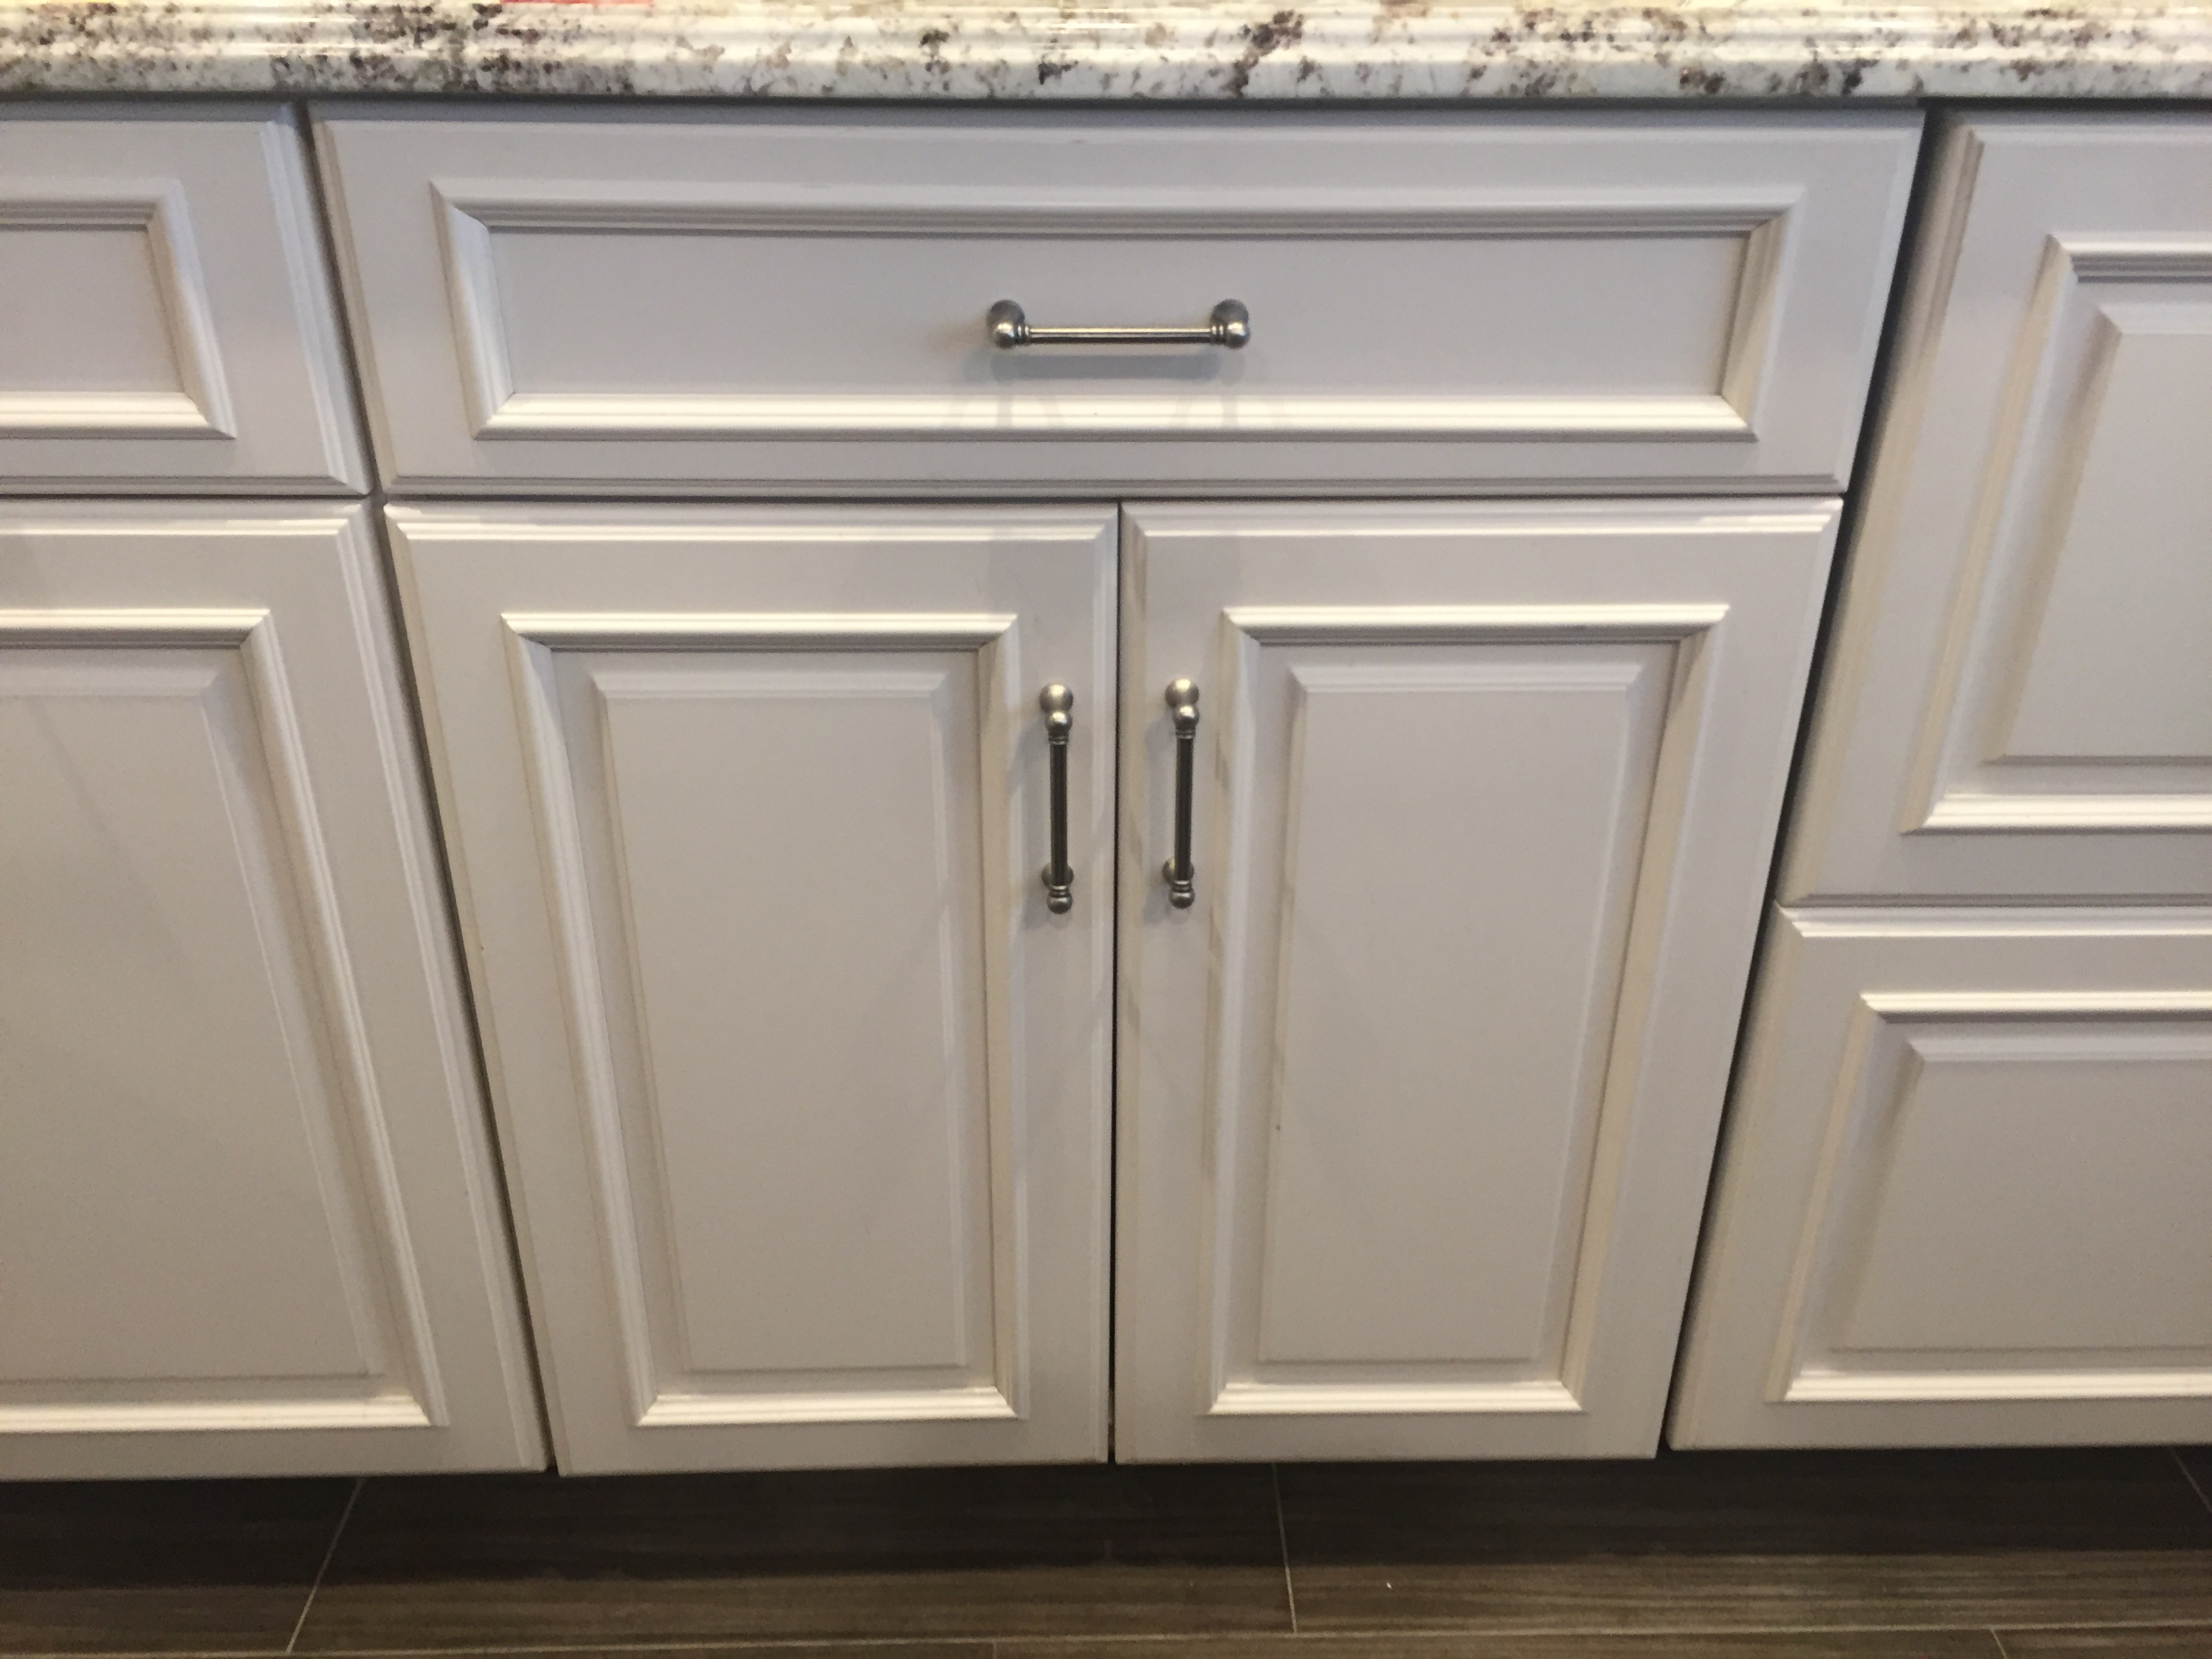 Inset Cabinetry (With Concealed Hinges)